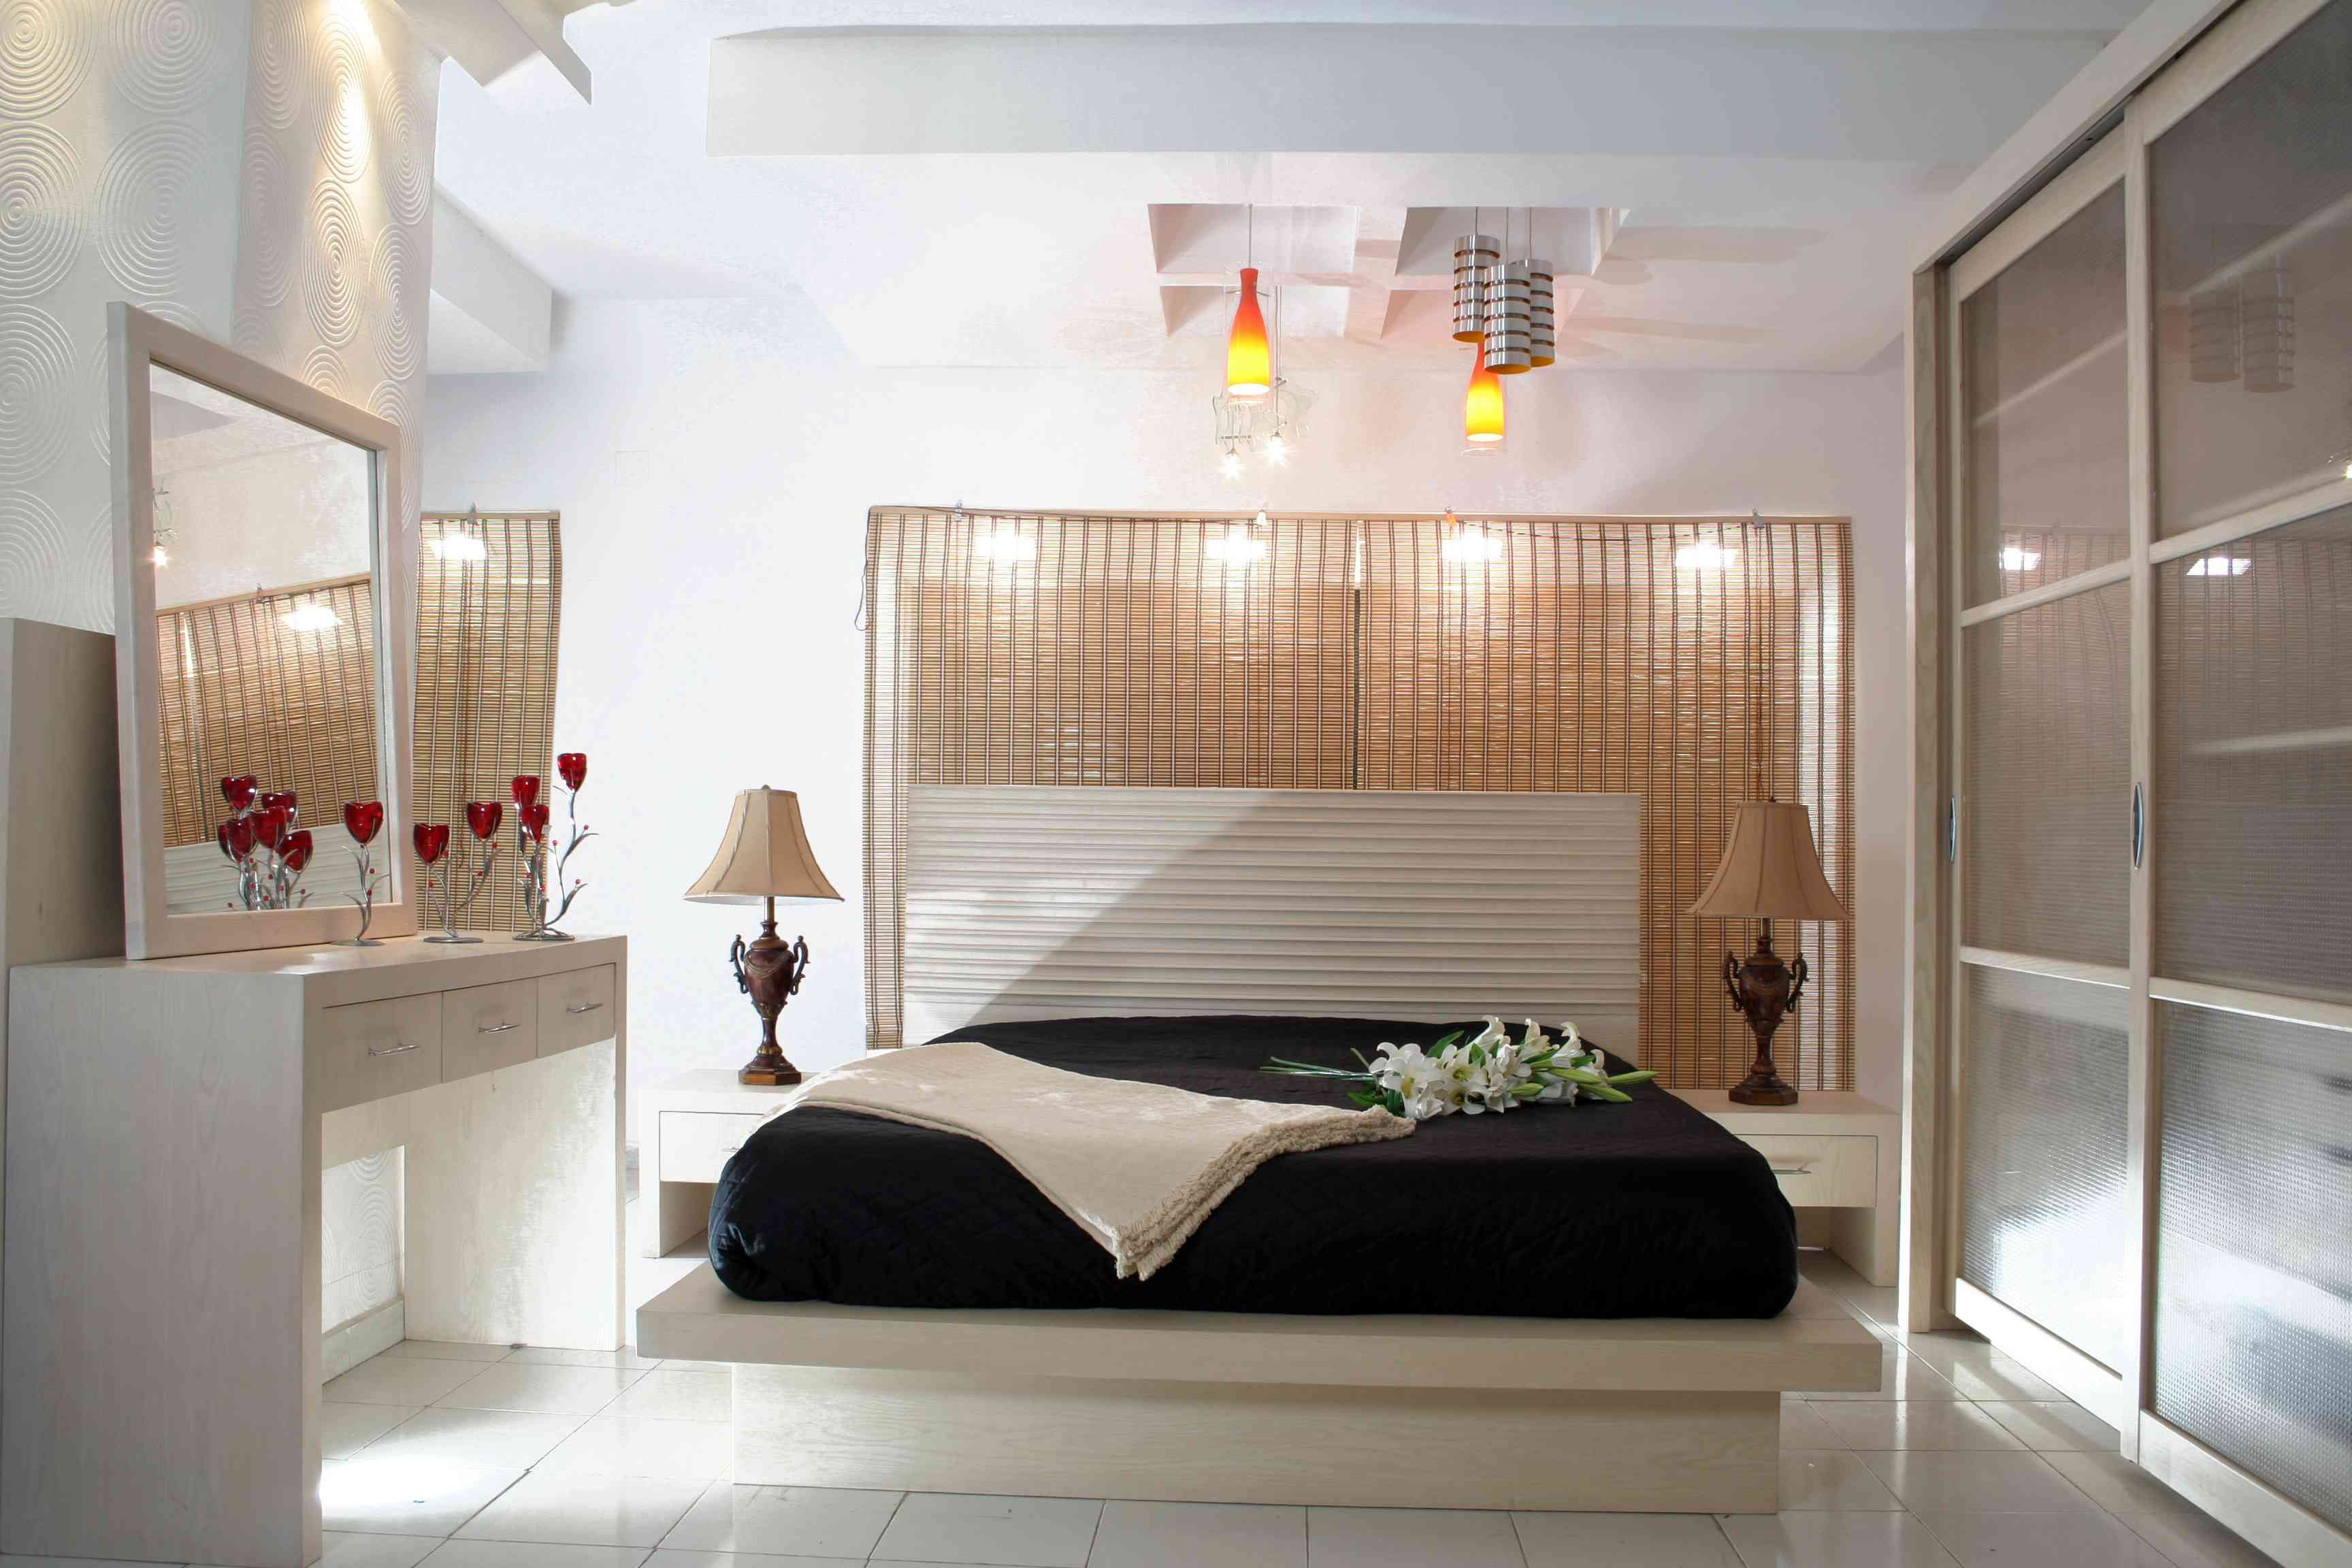 25 Best Master Bedroom Interior Design Ideas Bedroom Designs For Couples Bedroom Ideas For Couples Modern Bedroom Interior